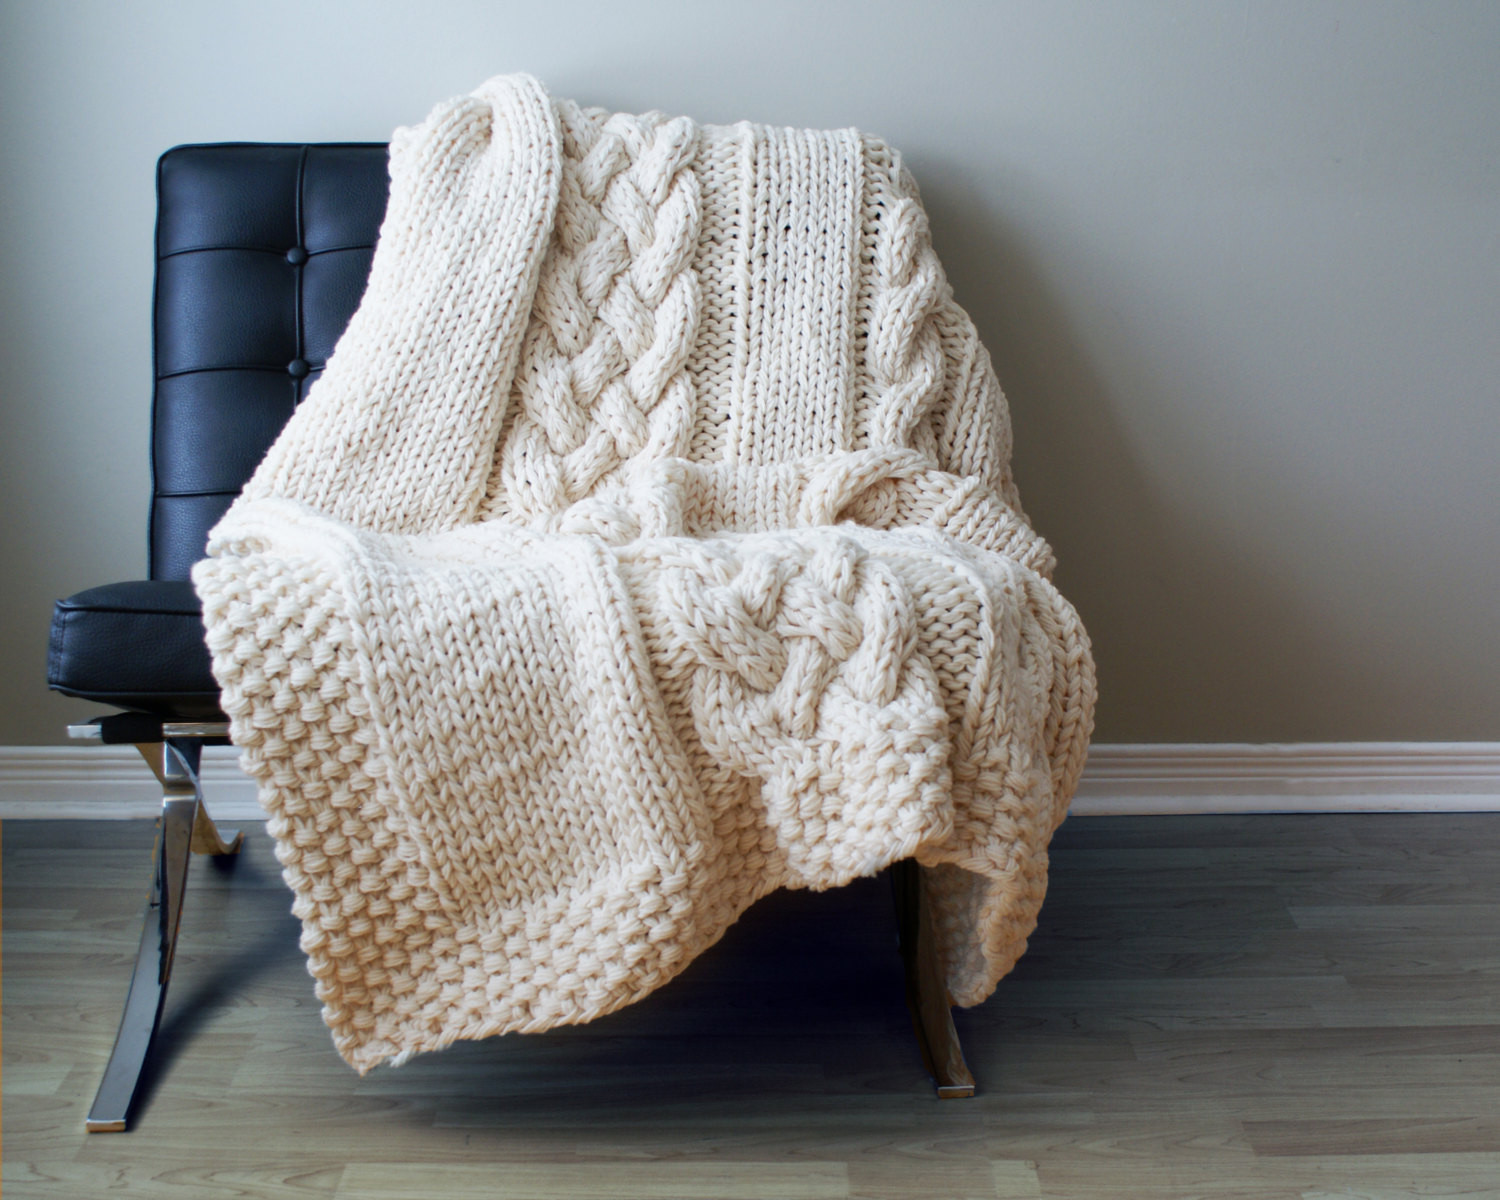 Awesome Chunky Knit Blanket Pattern Chunky Knit Of Incredible 50 Pictures Chunky Knit